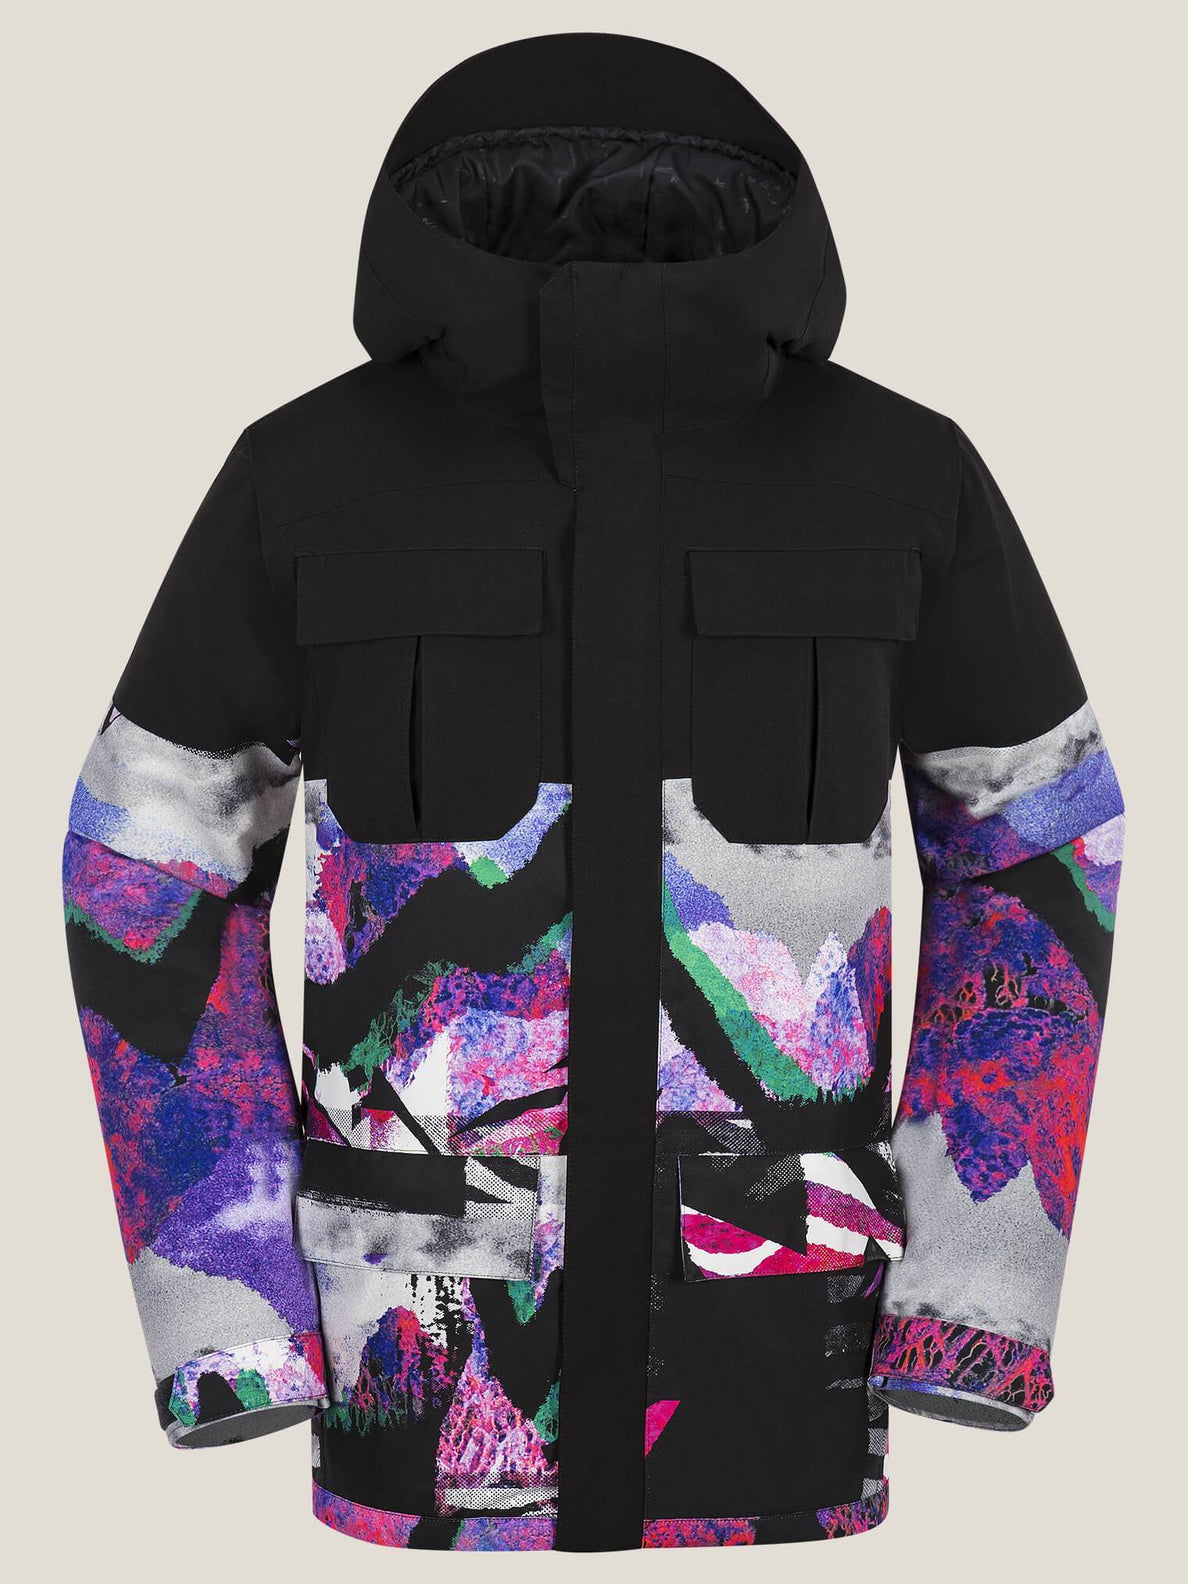 Alternate Insulated Jacket